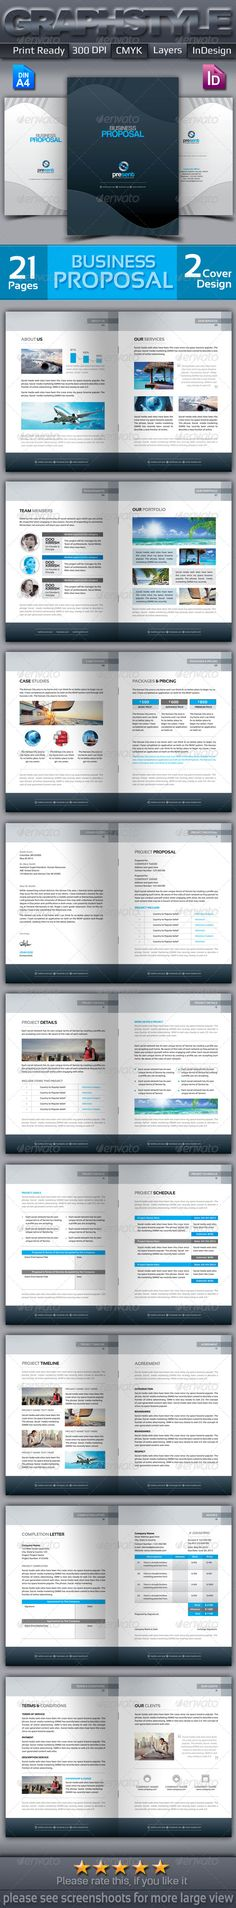 Pin by Karla Morloy on Templates Pinterest Proposals, Proposal - proposal templates